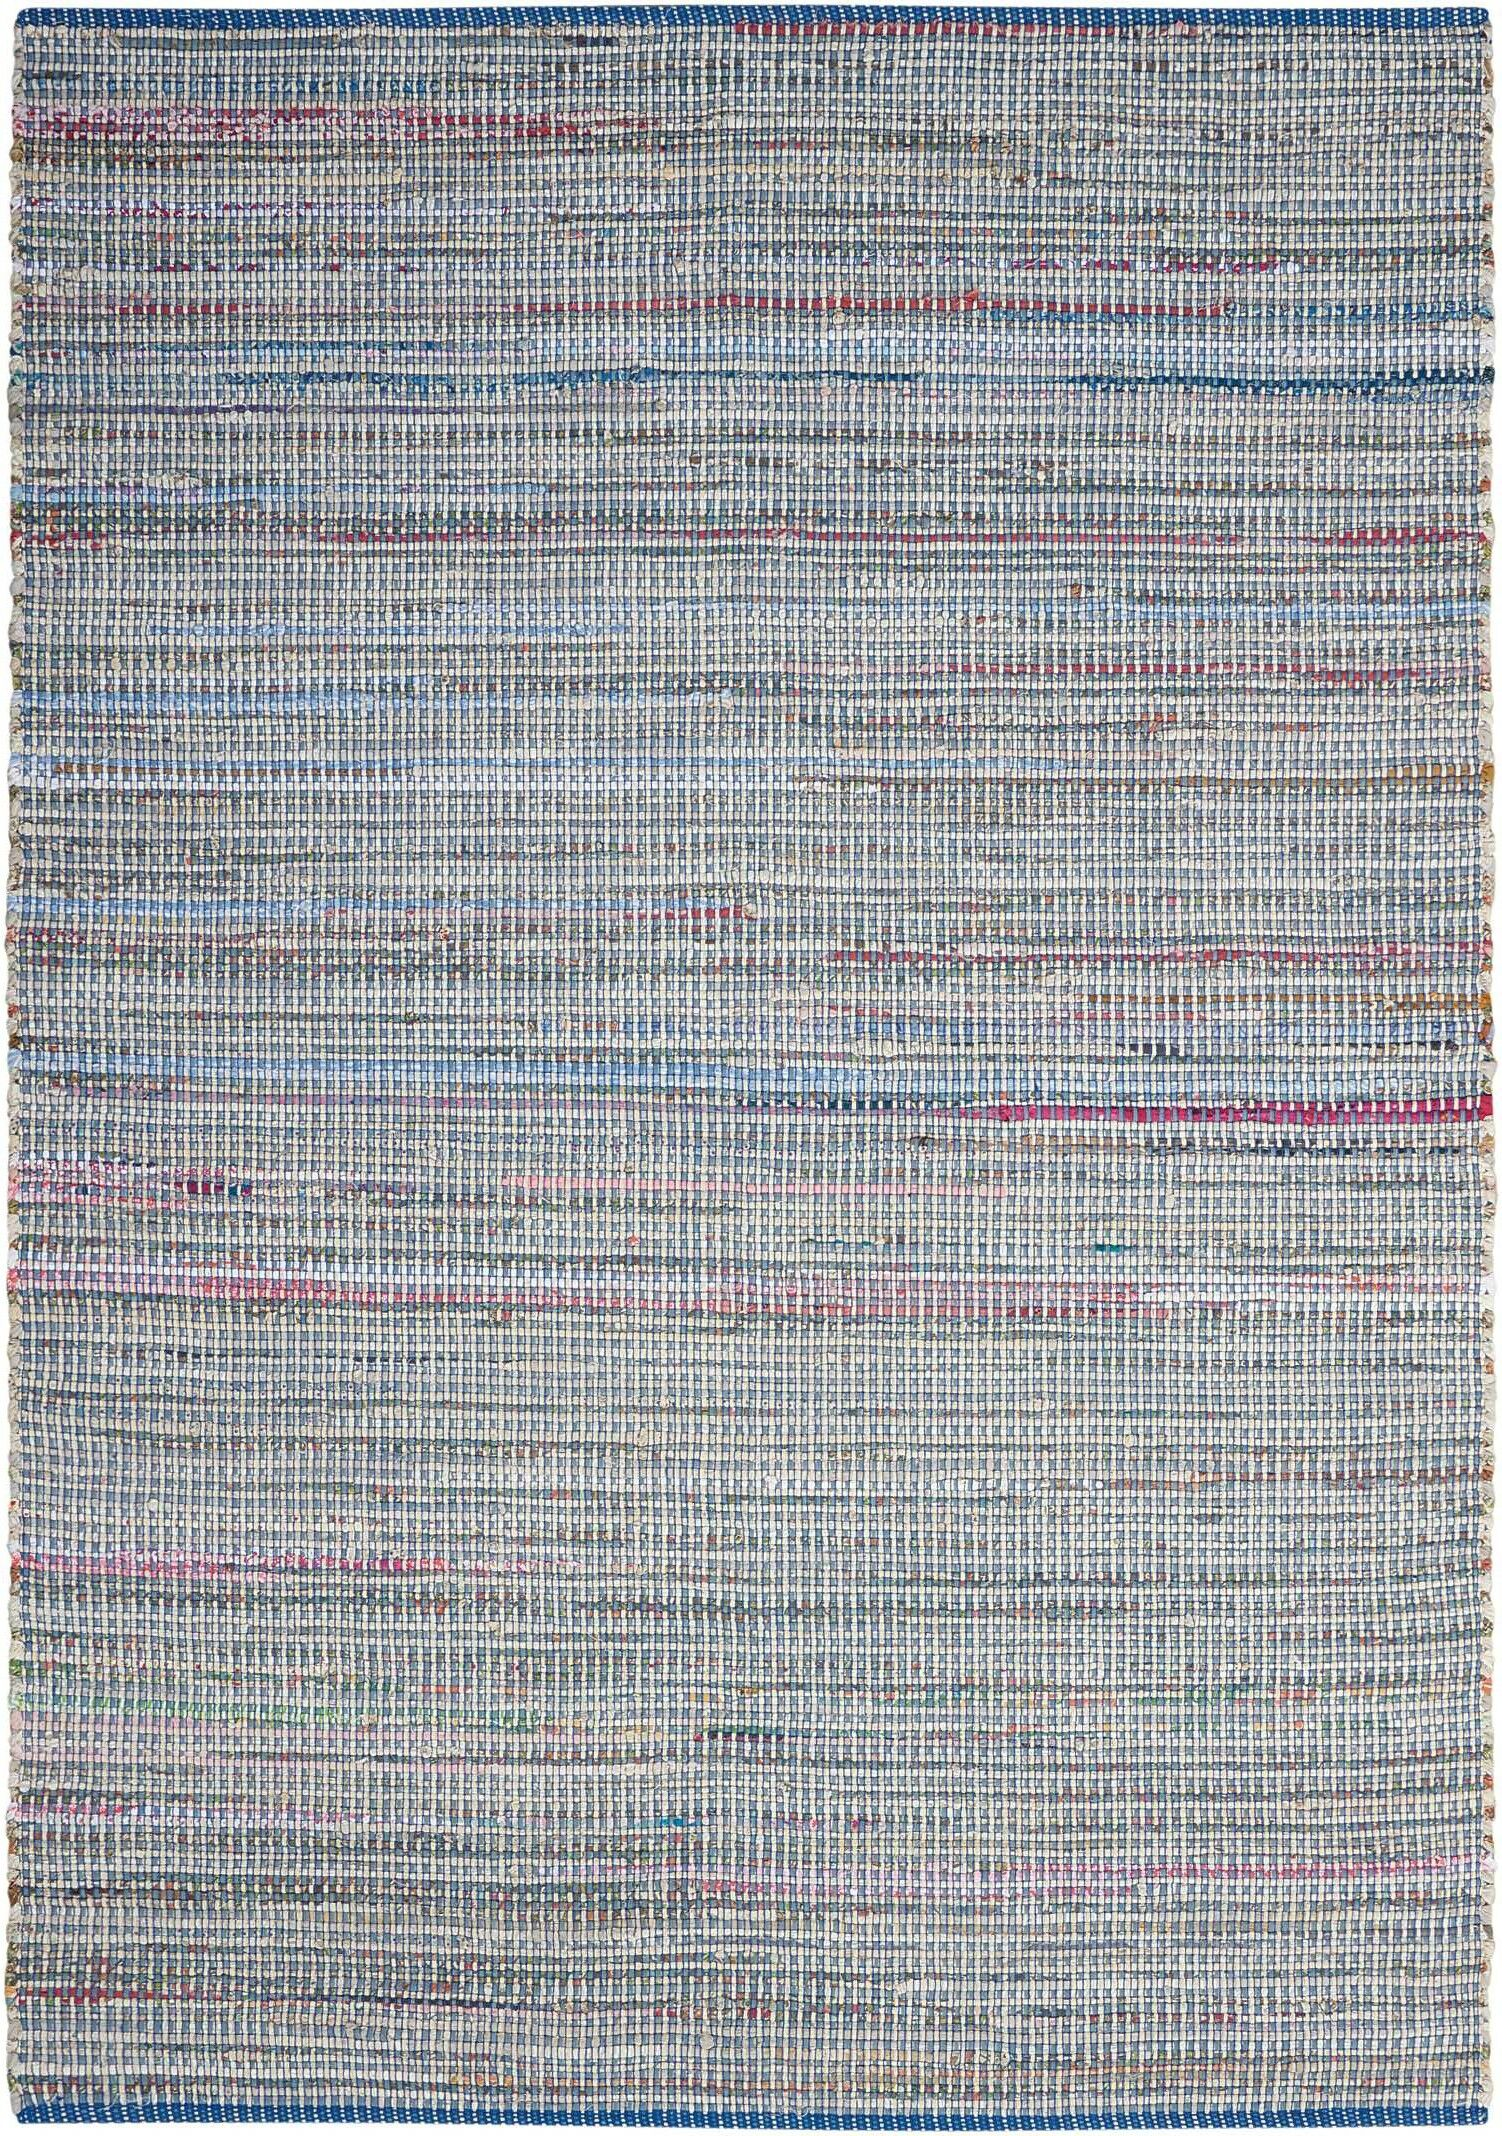 Bryce Canyon Hand-Woven Denim Area Rug Rug Size: Rectangle 5' x 7'